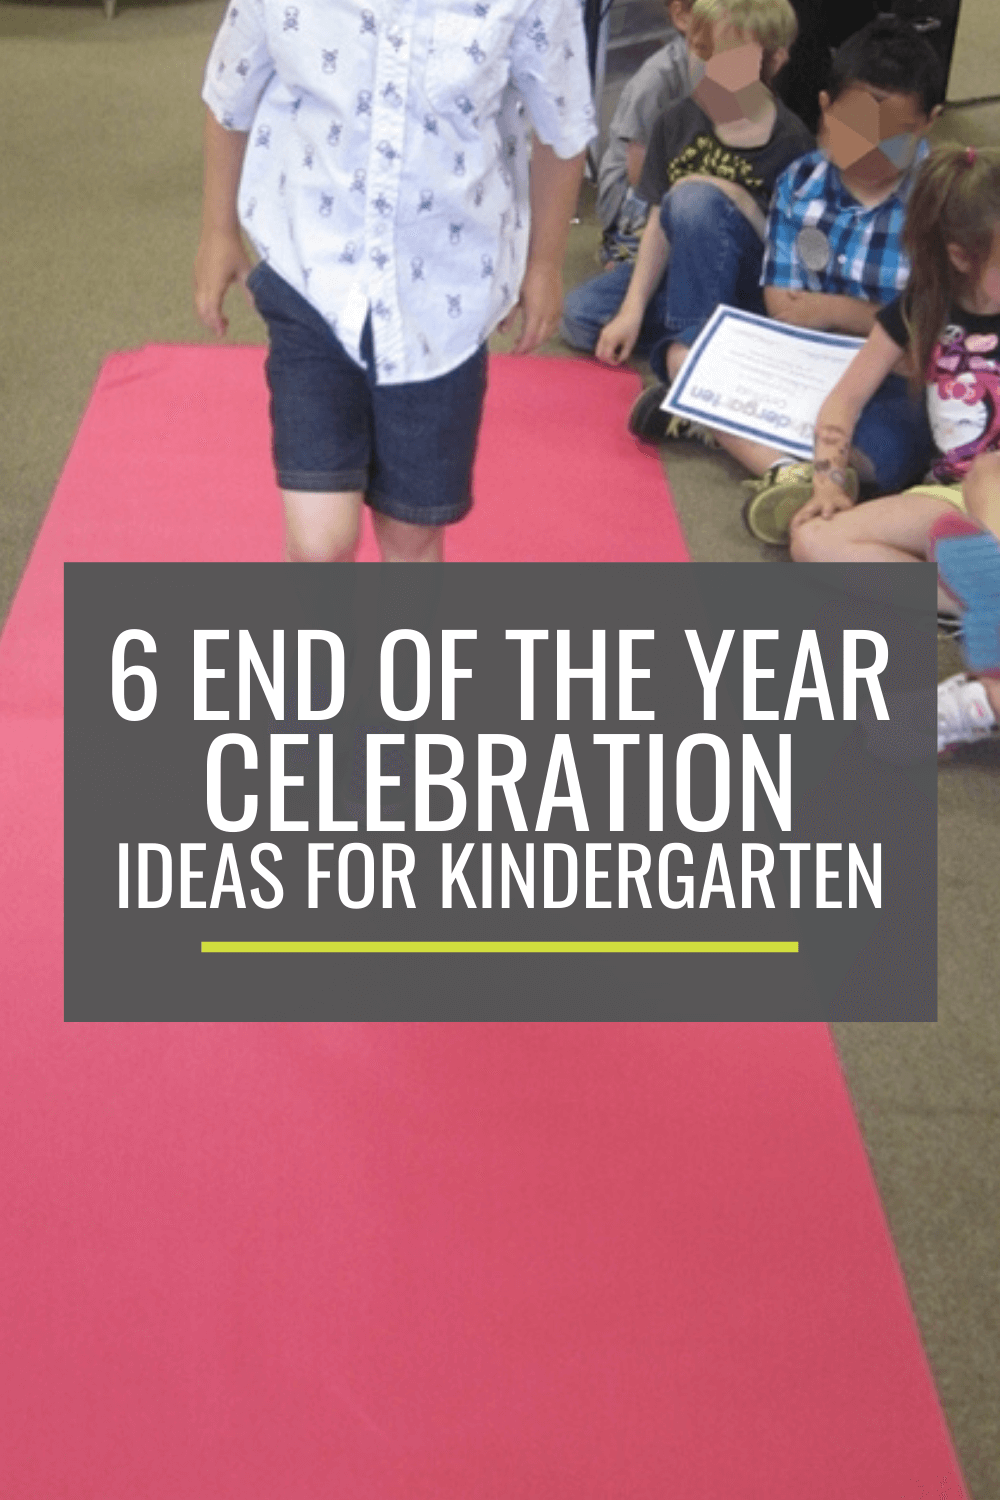 6 End of the Year Celebration Ideas for Kindergarten